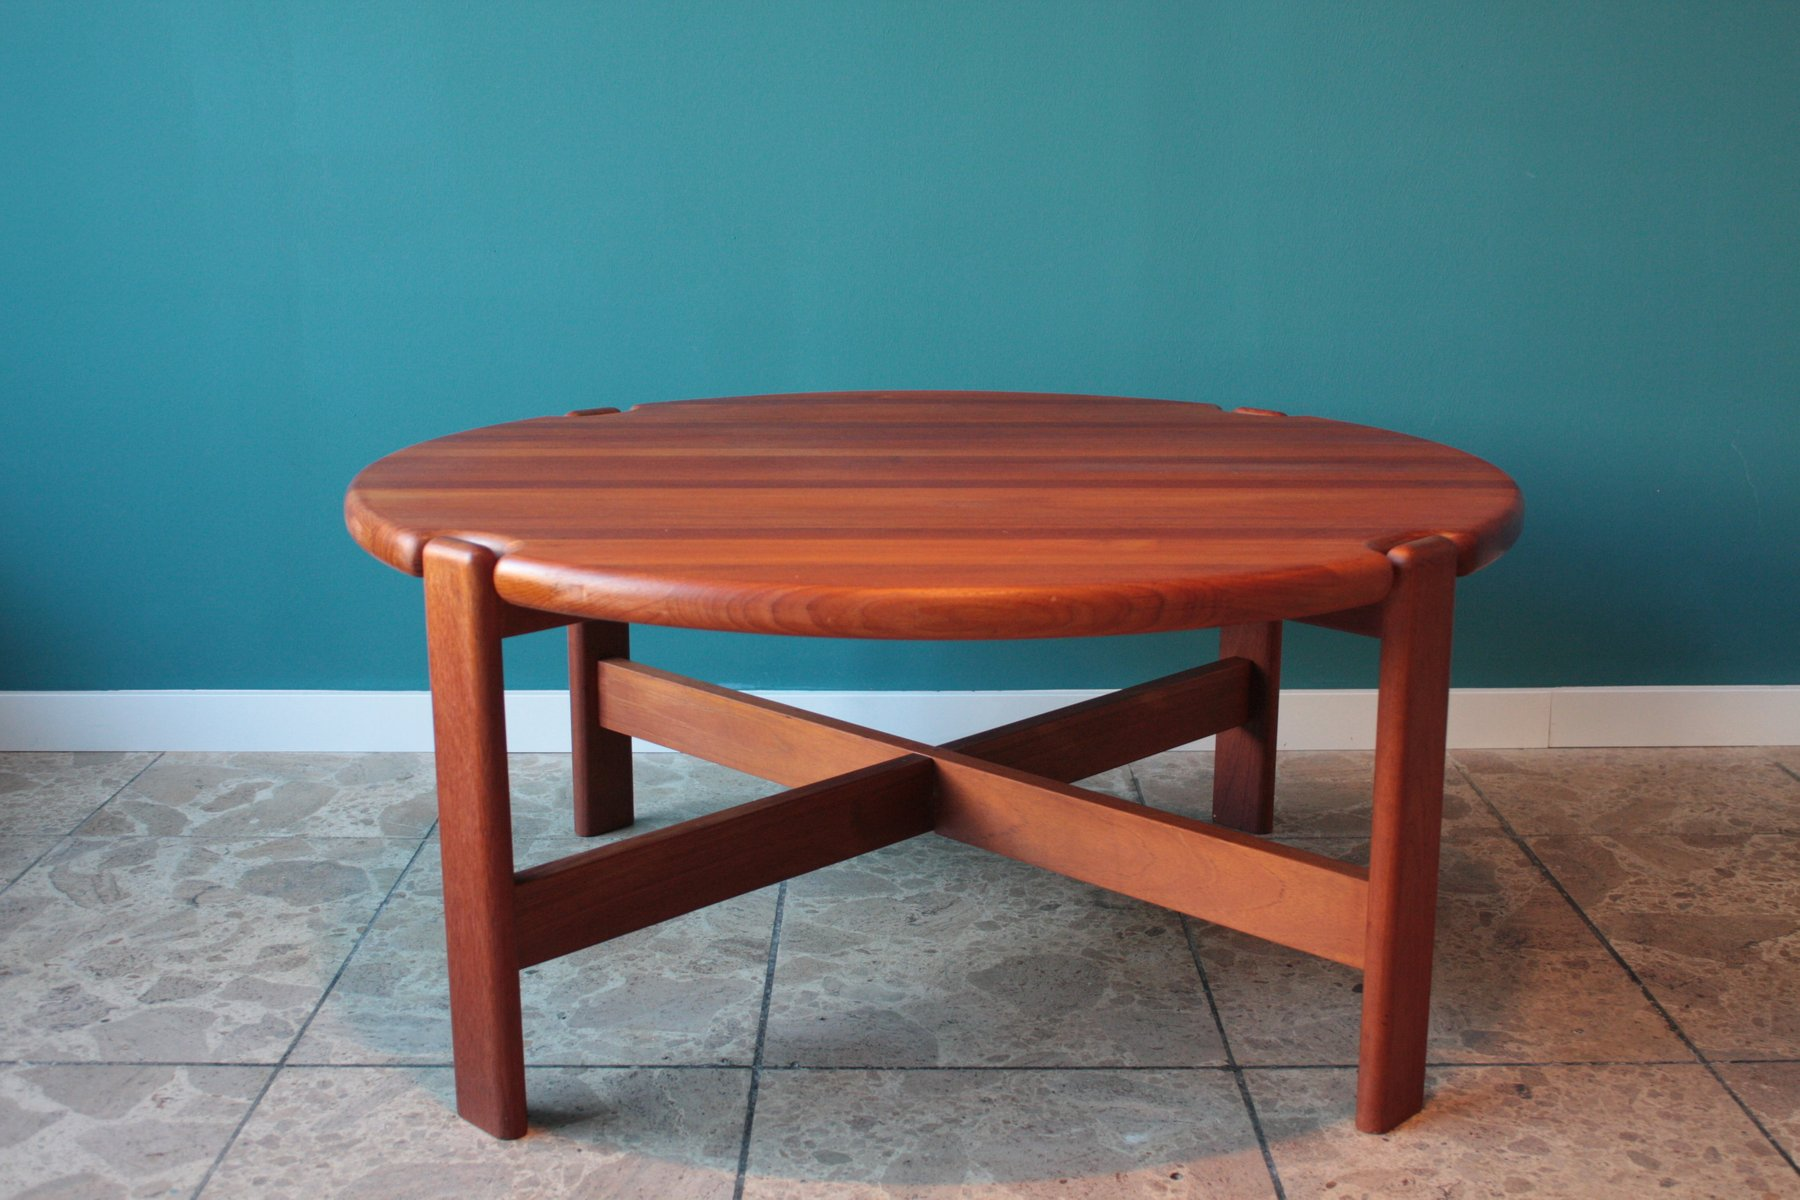 Round Danish Solid Teak Coffee Table 1970s for sale at Pamono